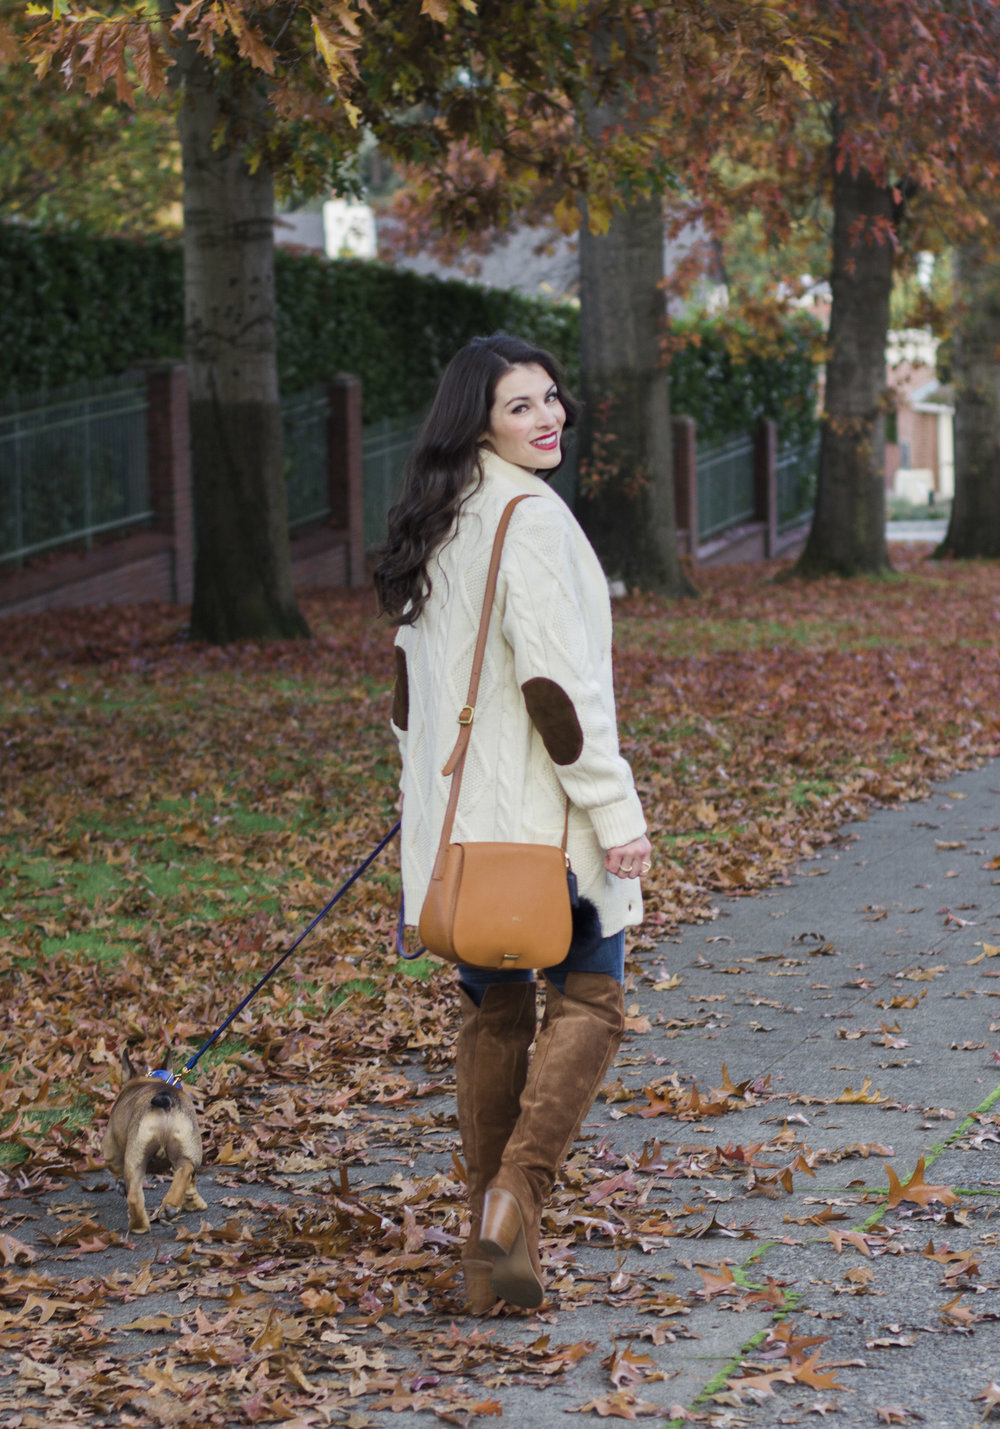 Mark & Graham cable cardigan, daily crossbody bag, Italian leather leash and collar, french bulldog puppy, sweater with elbow patches, cute fall outfits.